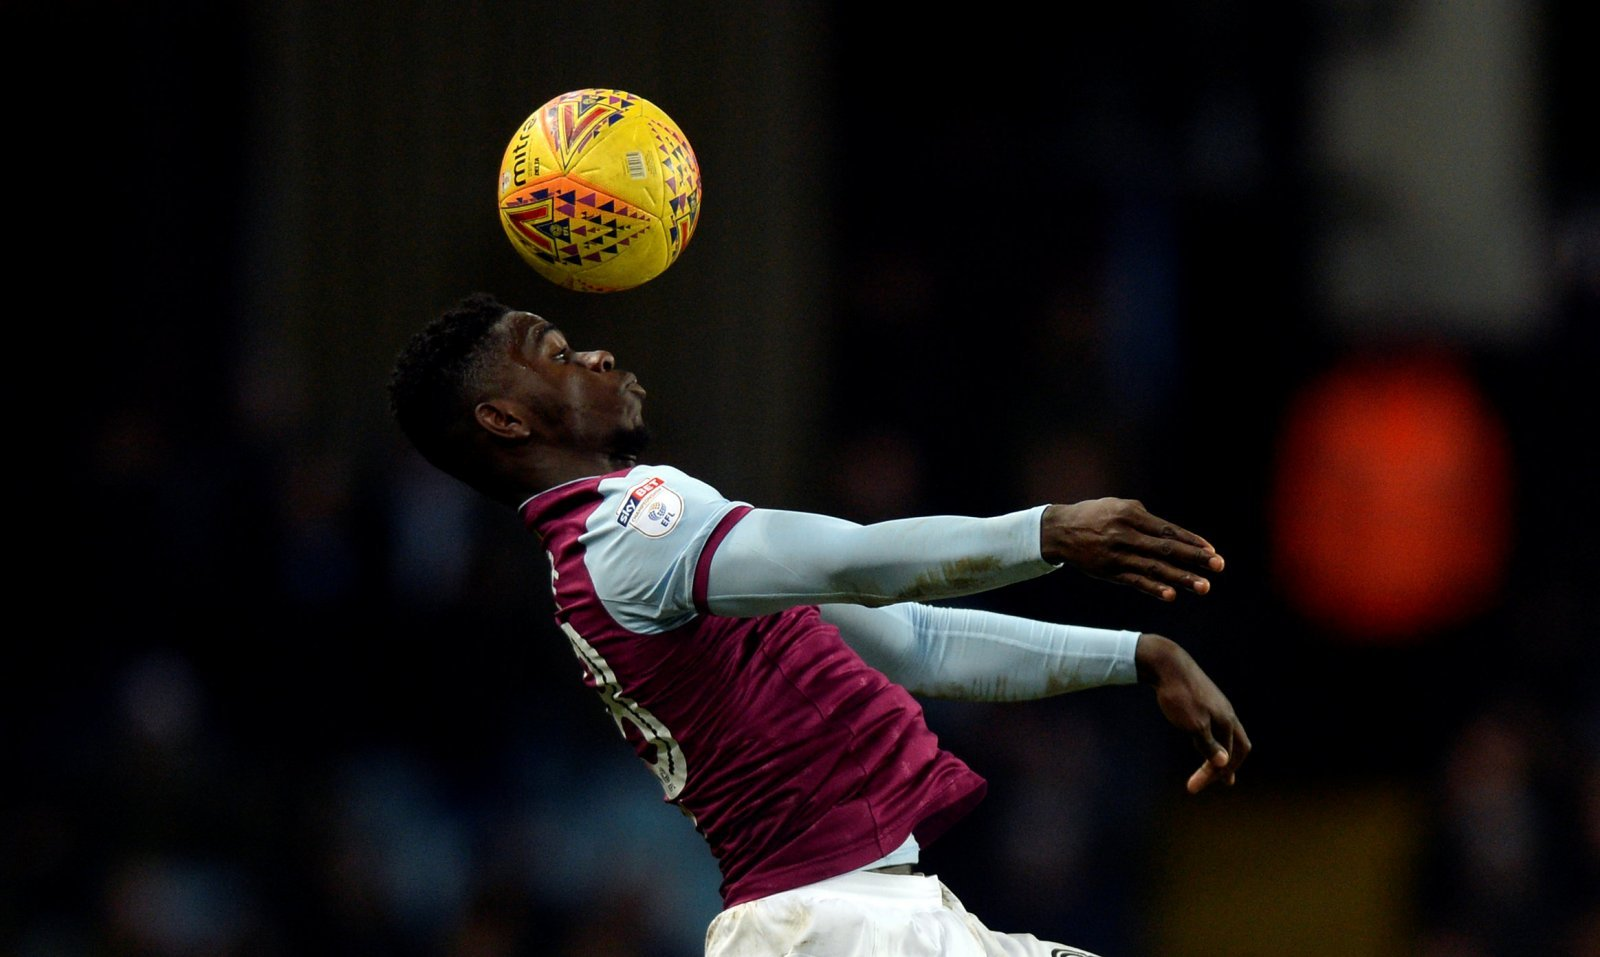 Manchester United: Alex Tuanzebe staying at Aston Villa could send him on Lingard path